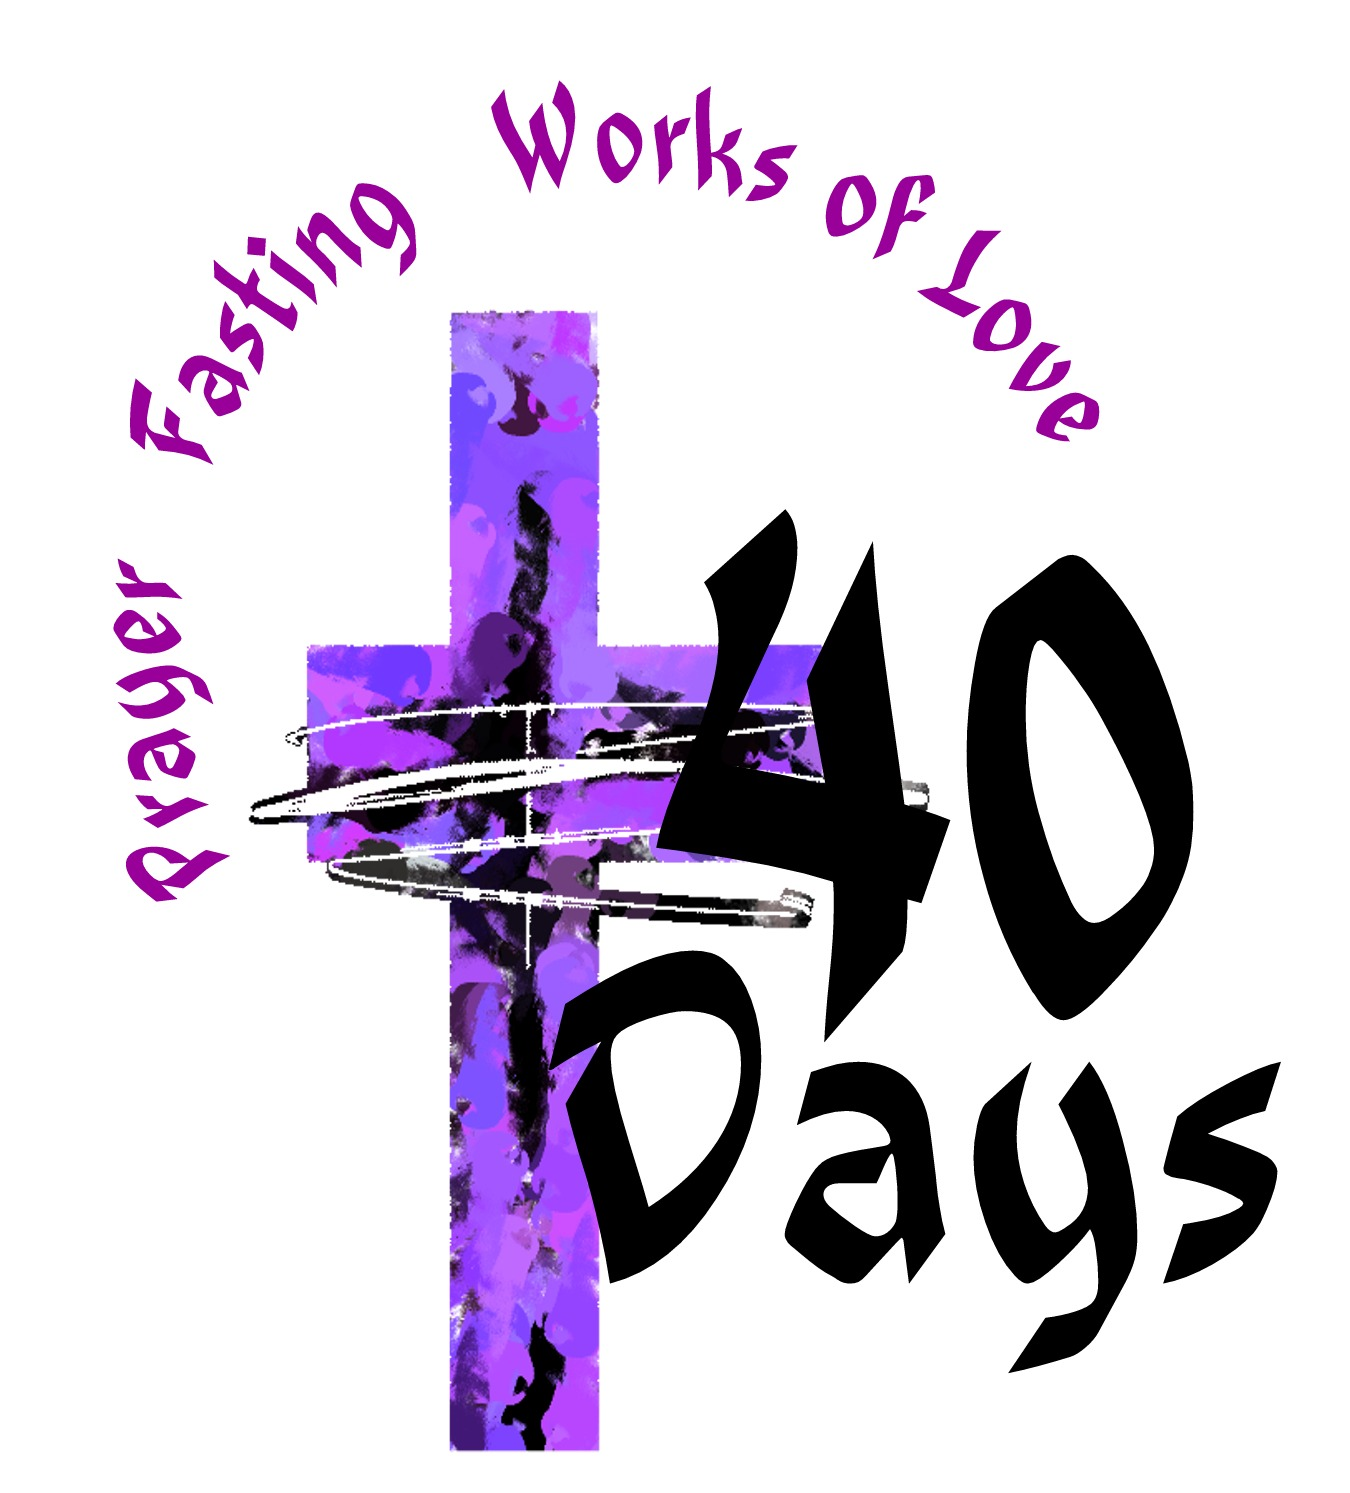 Welcome to Thailand.: The first Sunday of the Lent 2016.